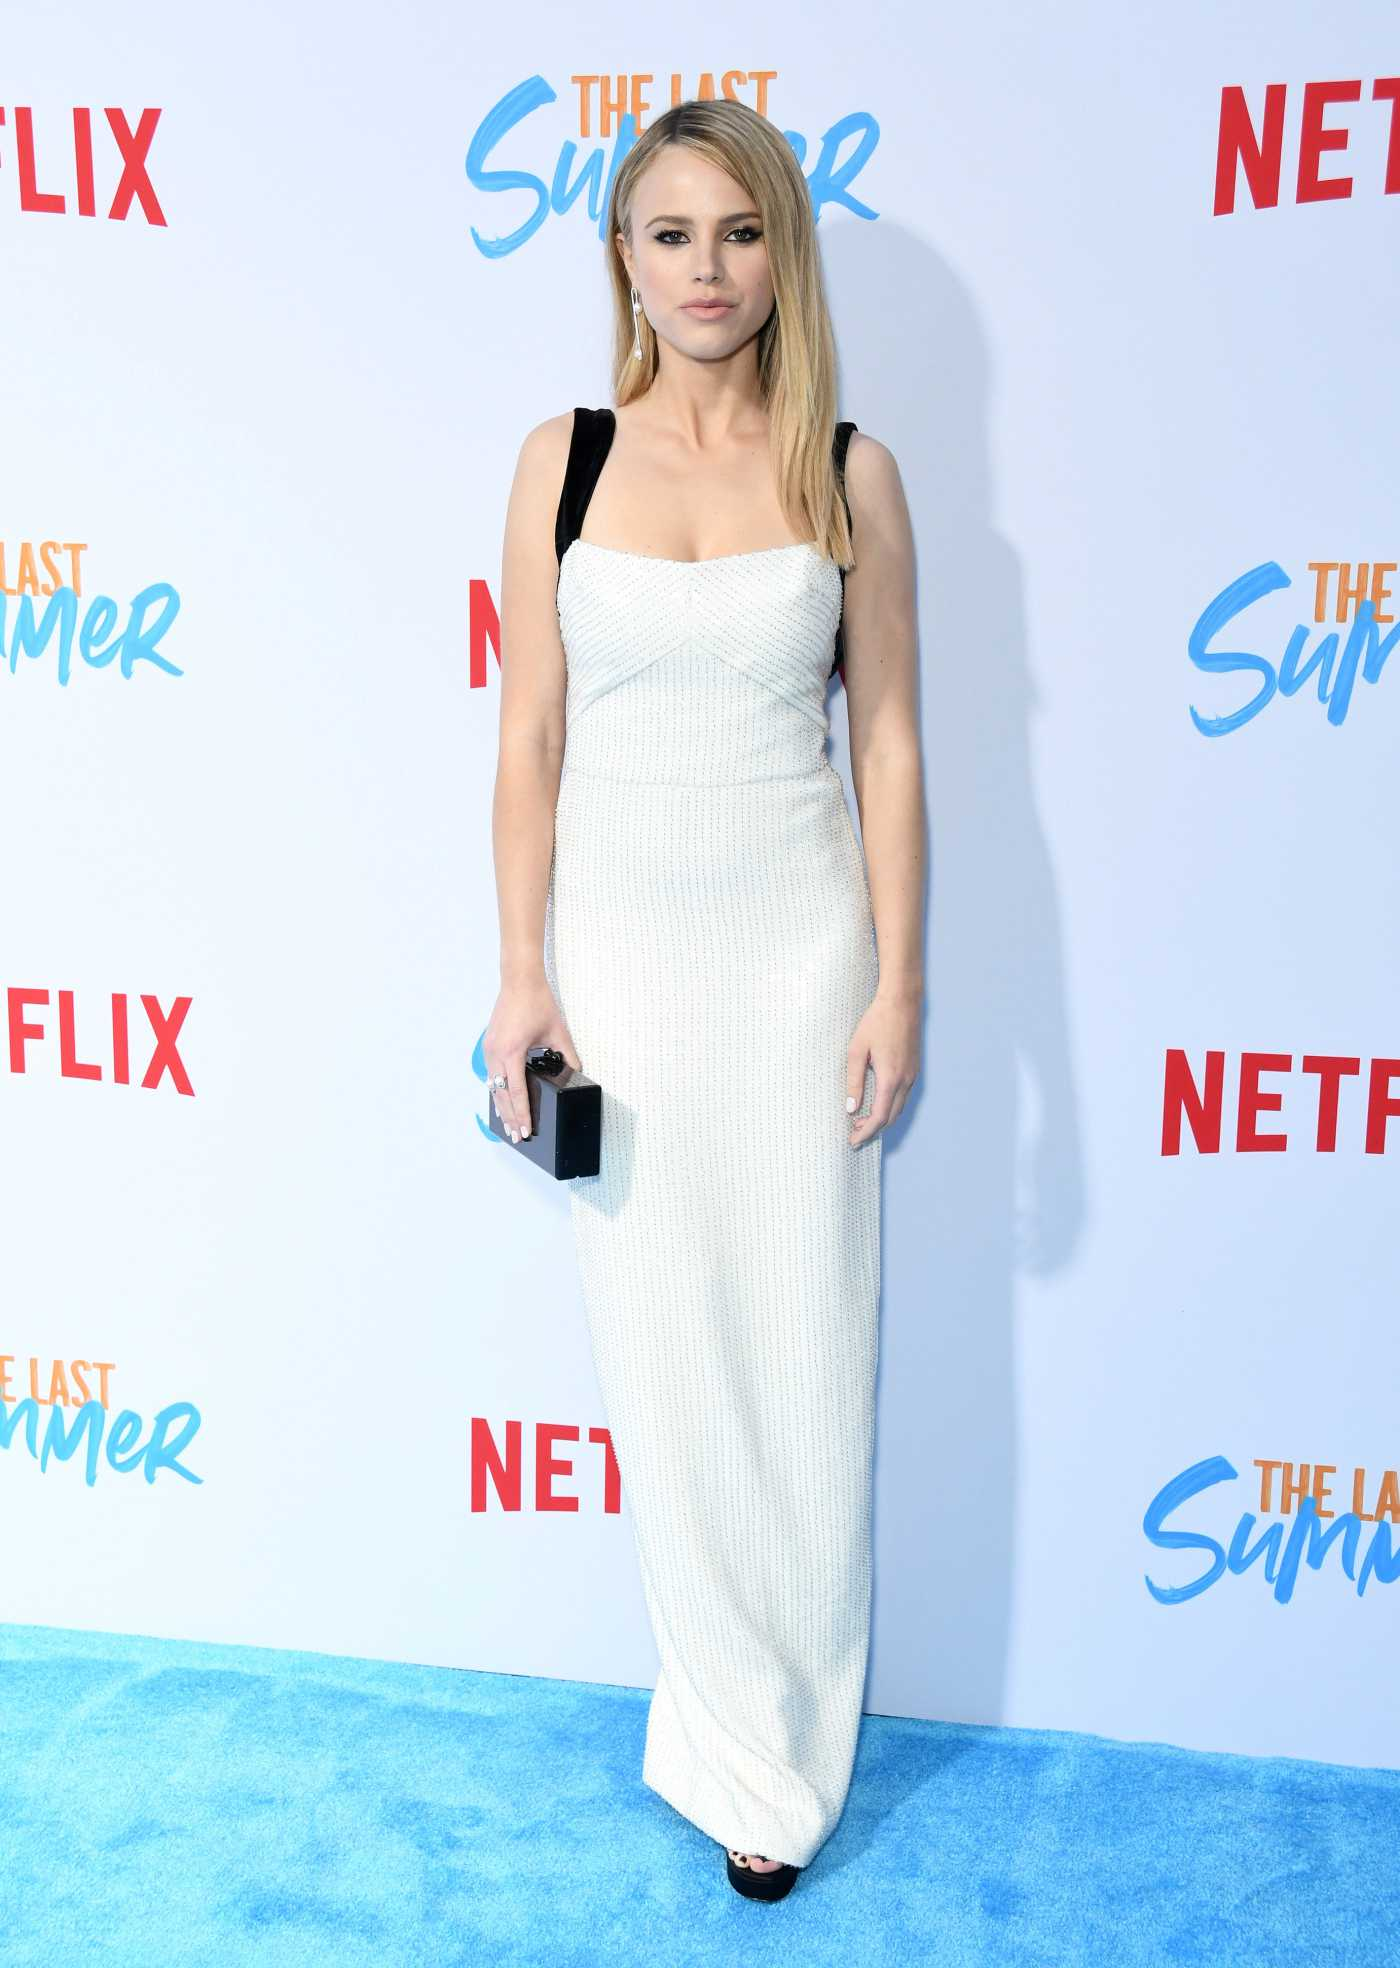 Halston Sage Attends Netflix's The Last Summer Screening in LA 04/29/2019